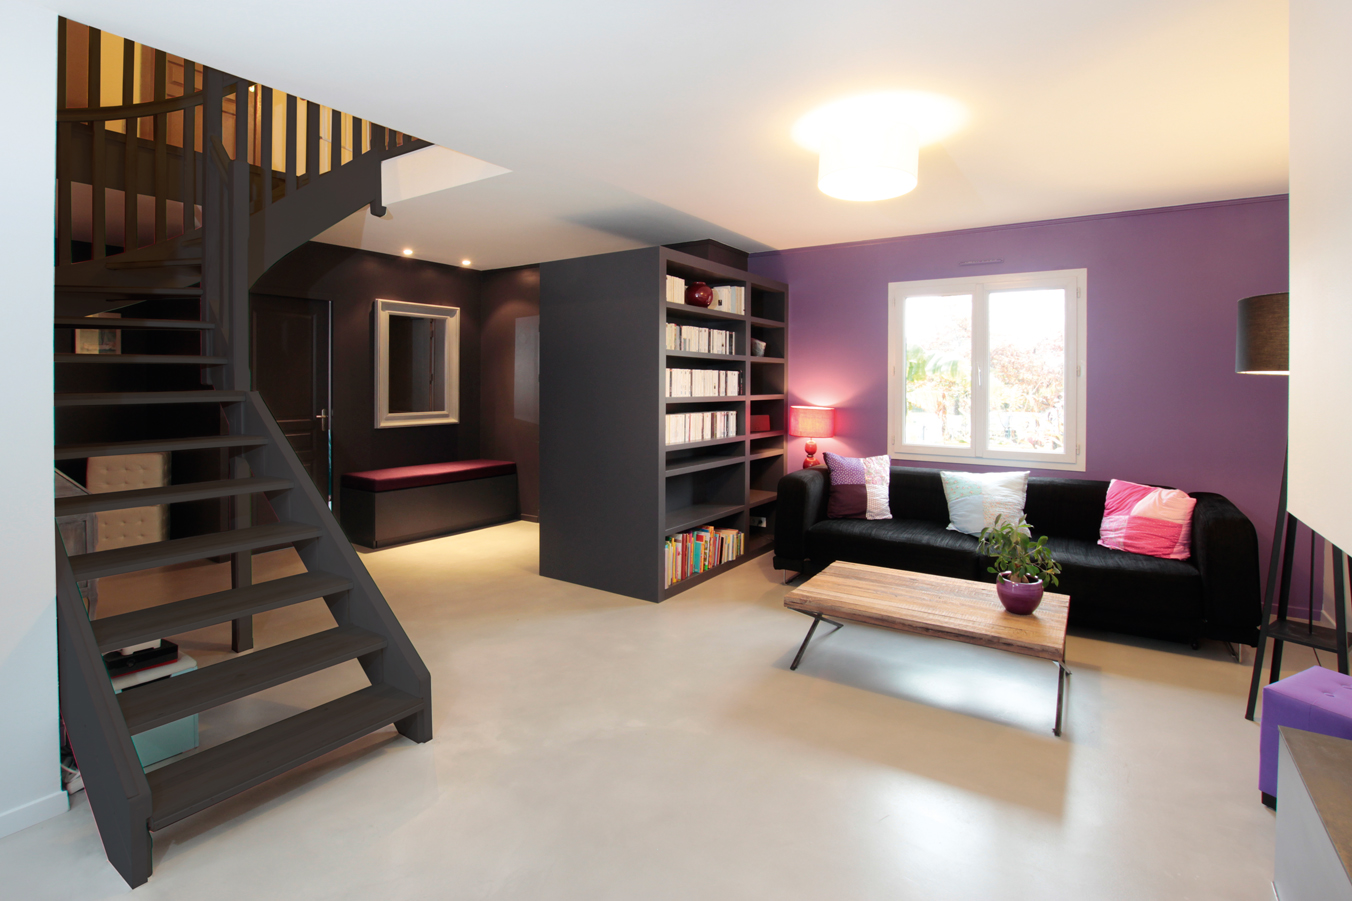 R novation en architecture d 39 int rieur sur nantes et for Decoration d un sejour